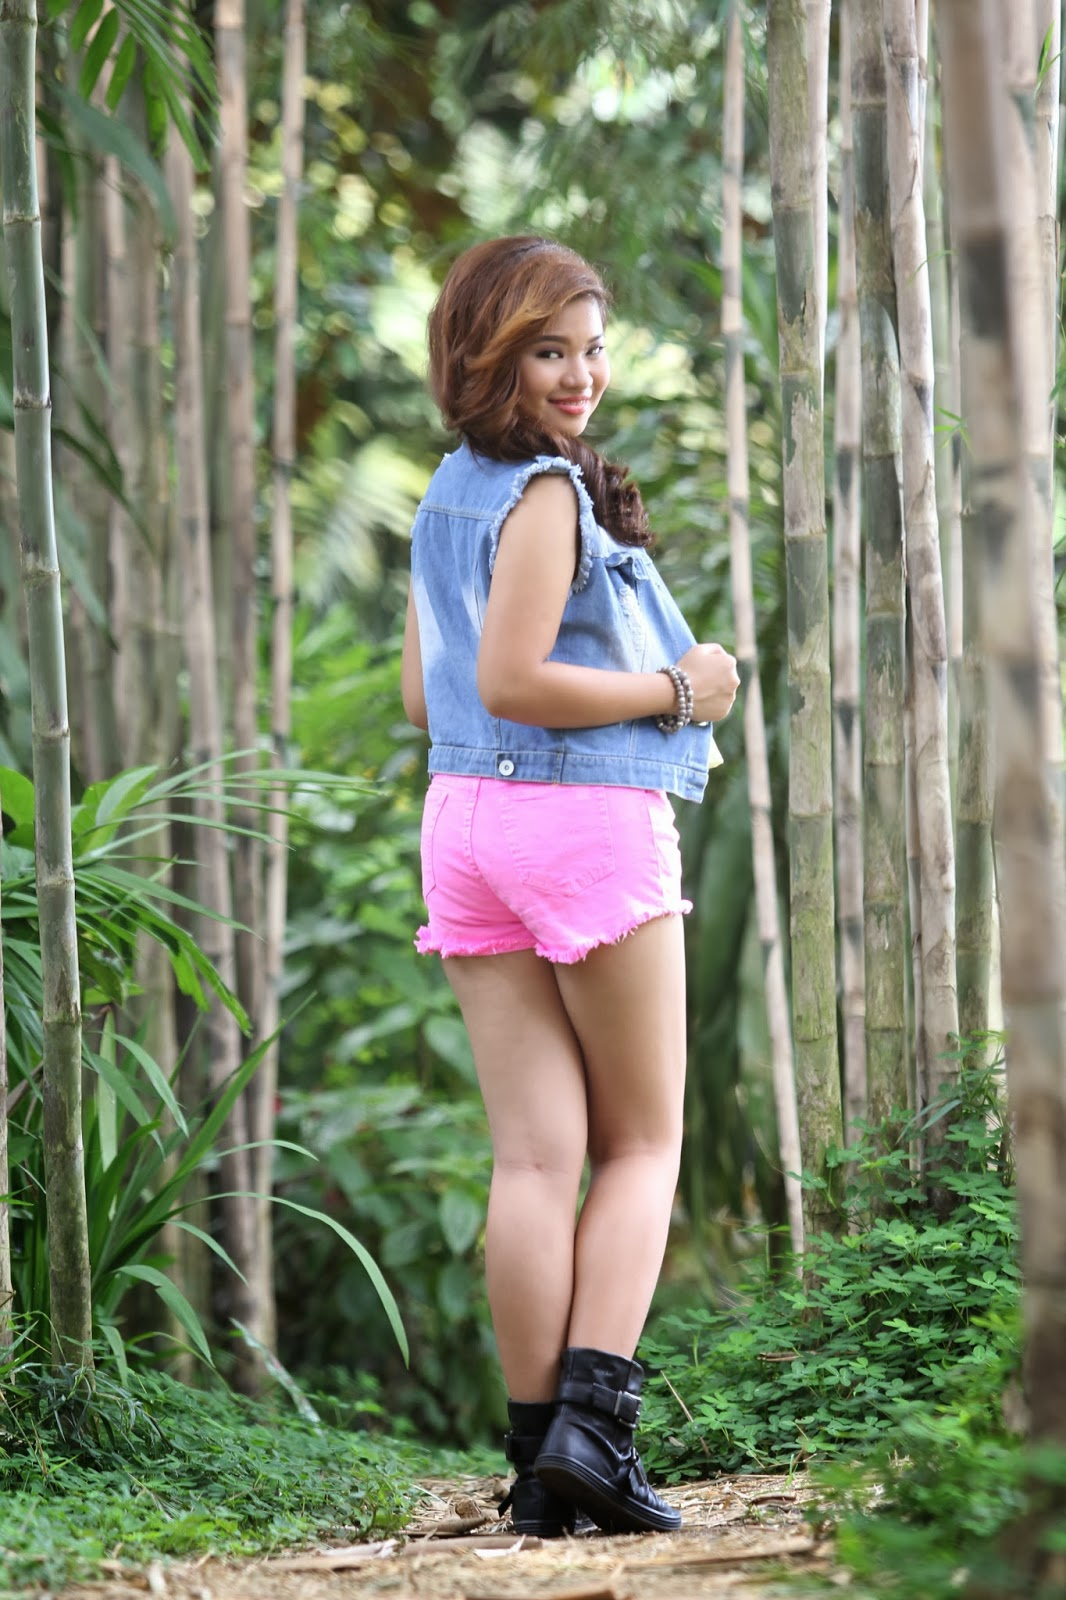 Lizette's Pre Debut Pictorial - pic8